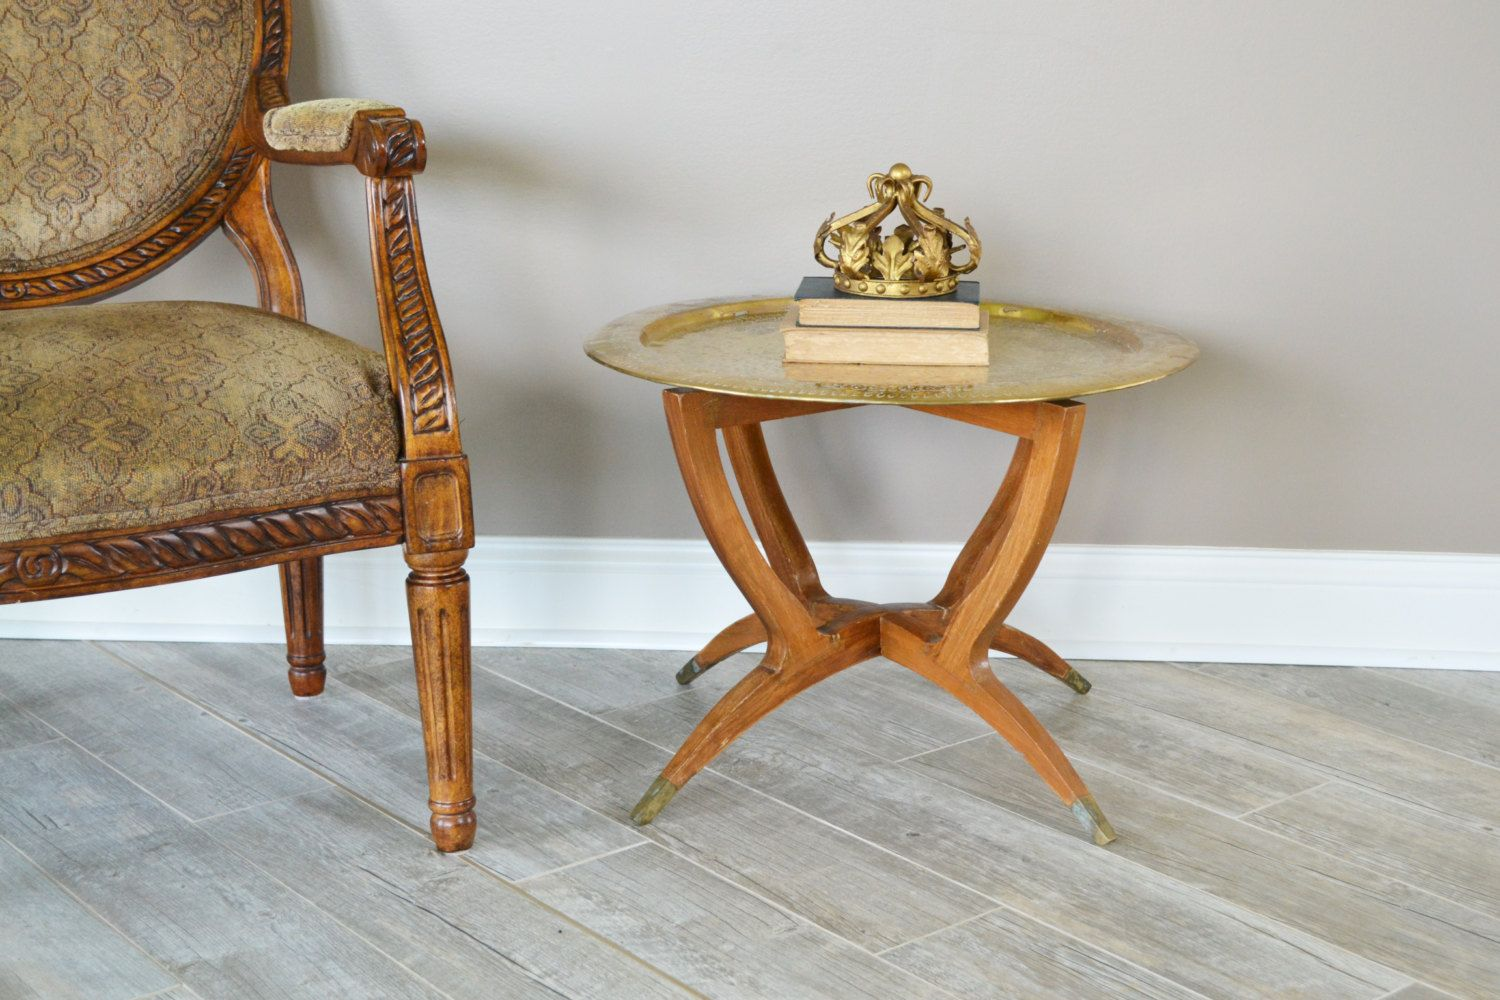 Mid Century Modern Spider Leg Coffee Table | Vintage Moroccan Table With  Brass Tray | Space